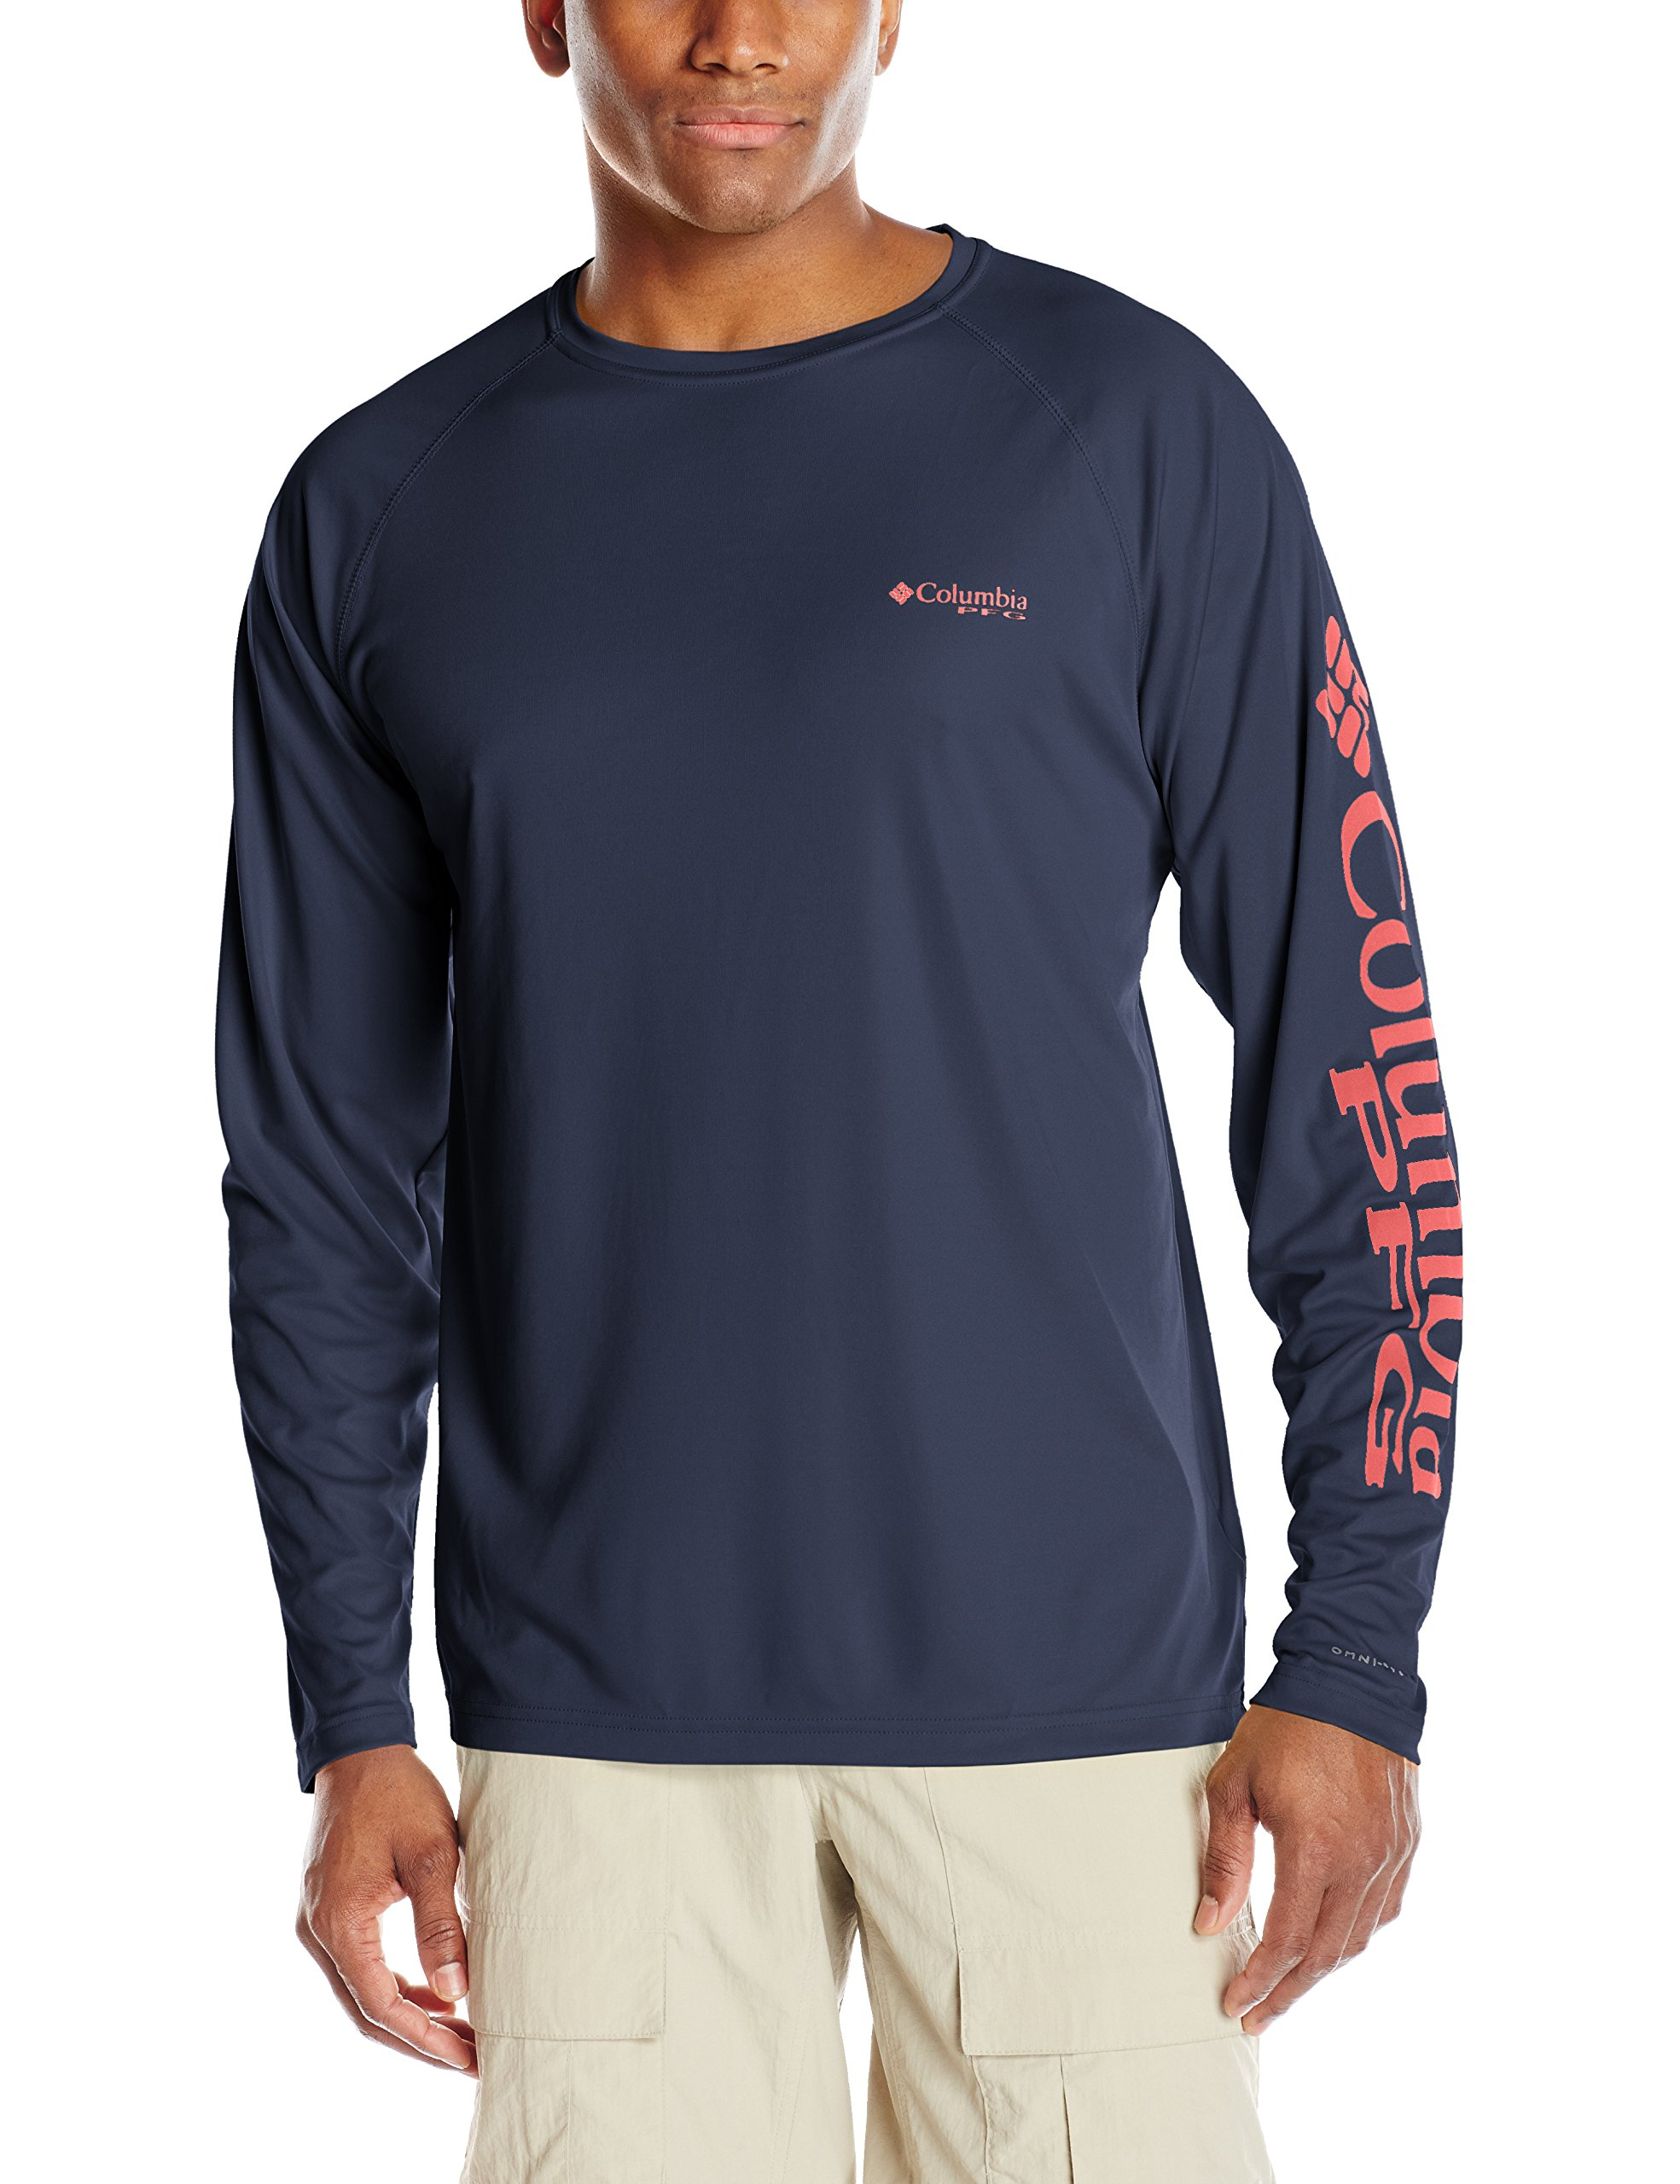 Columbia Sportswear Men's Terminal Tackle Long Sleeve Shirt, Collegiate Navy/Sunset Red Lo, Large